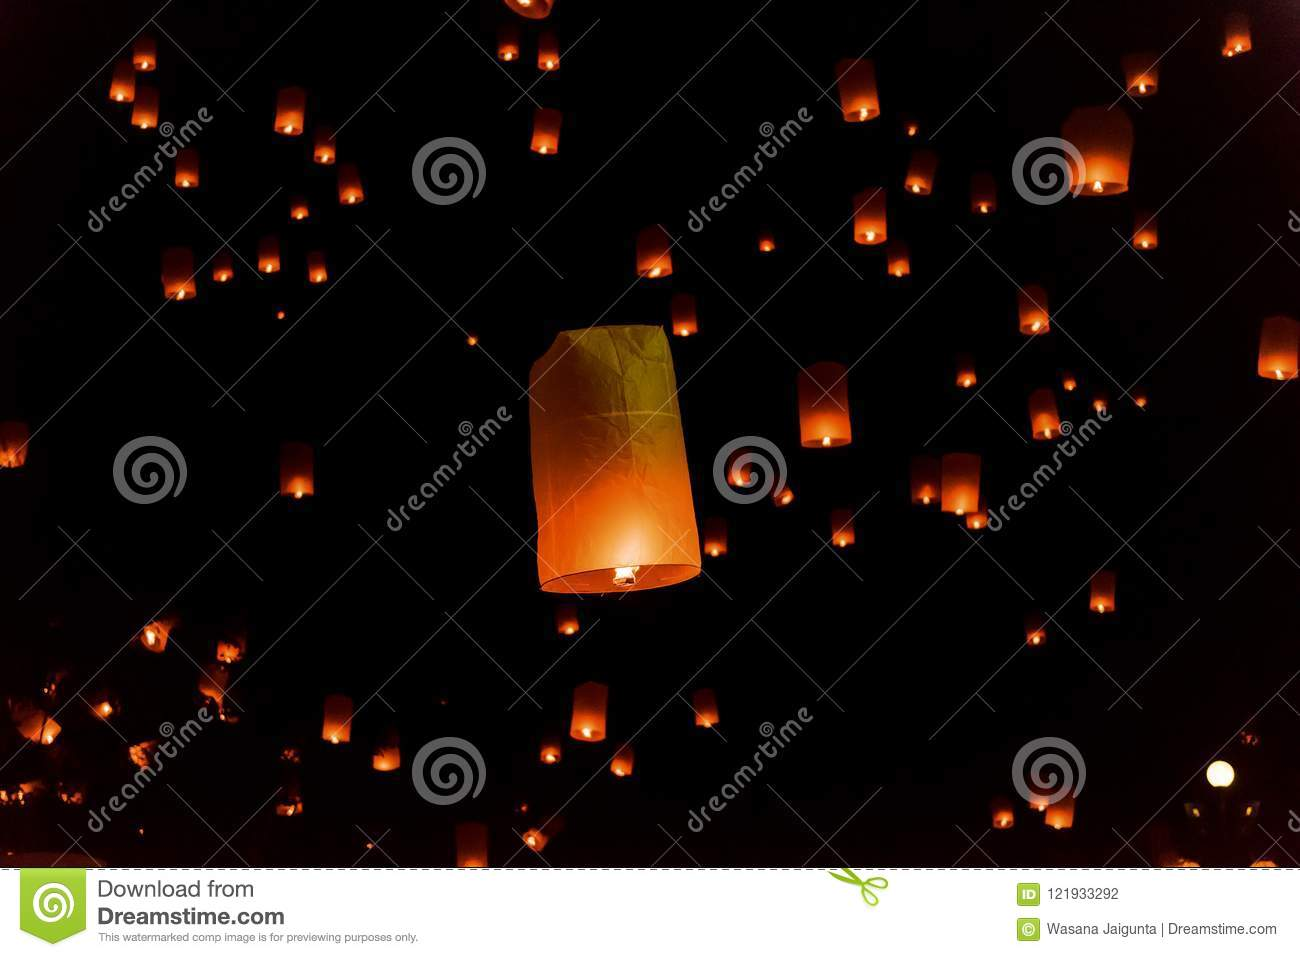 Floating lanterns or Balloon on the sky background.